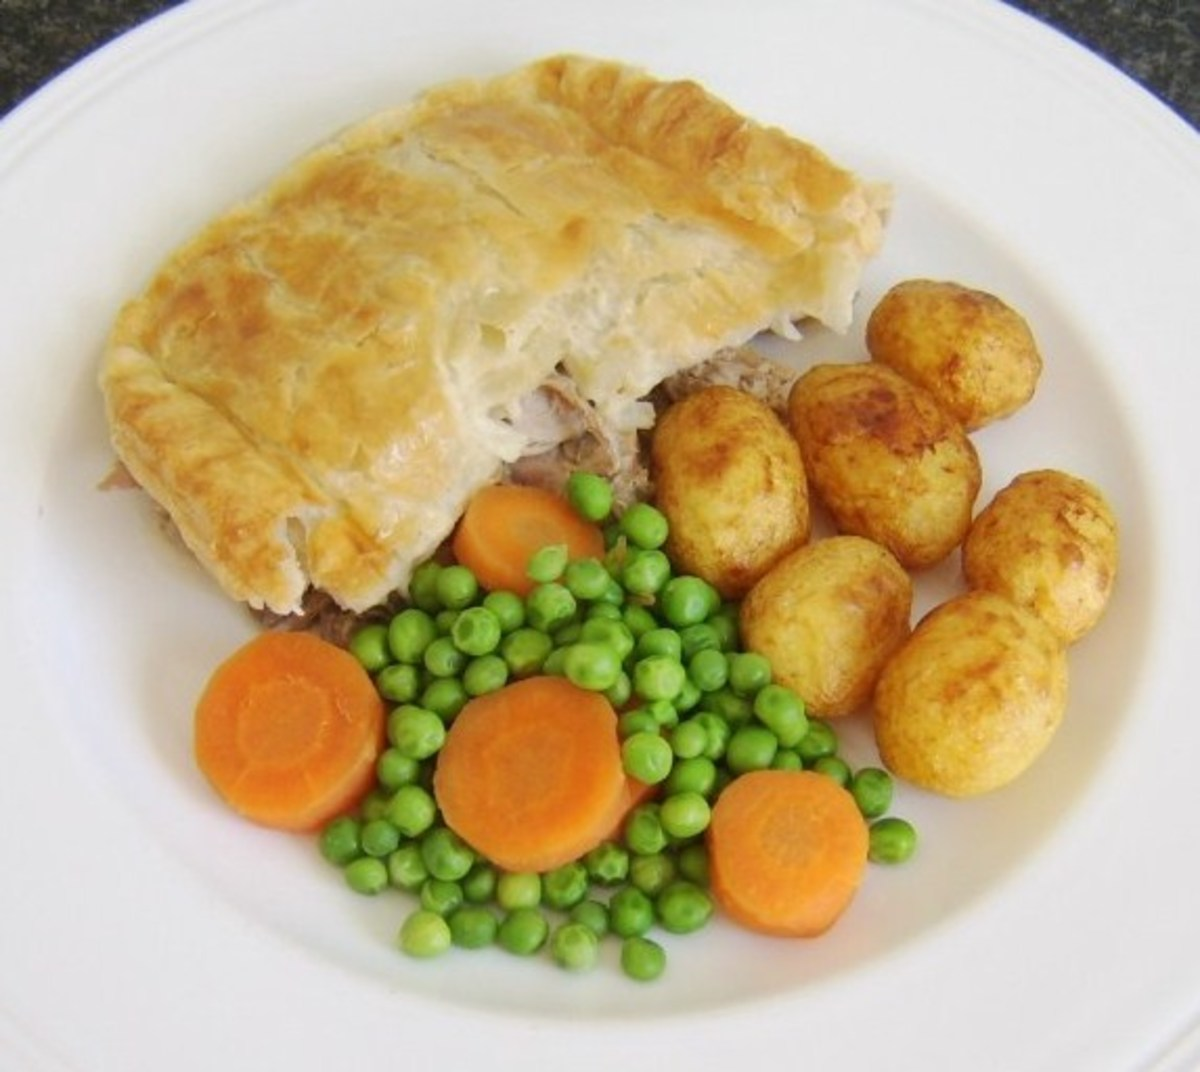 Rabbit and mutton pie is one of the very first recipes many people will think of for rabbit